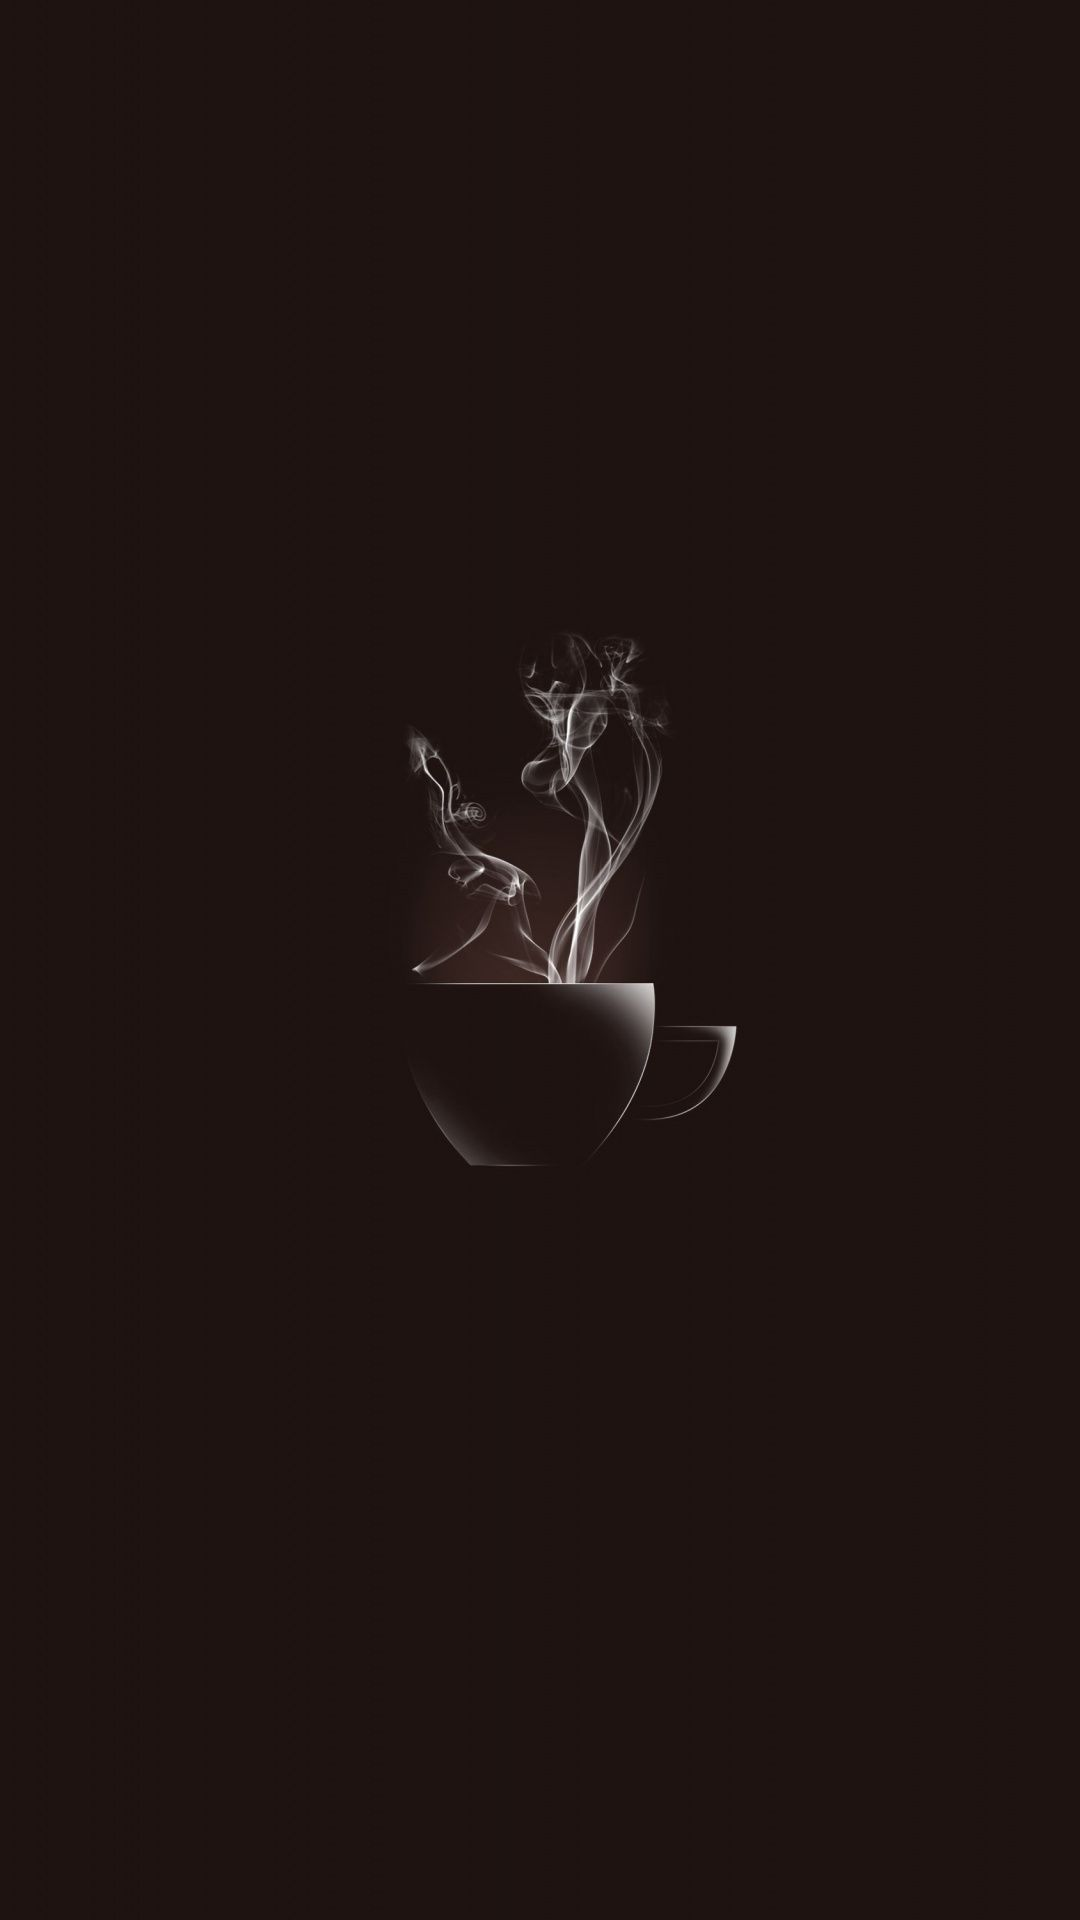 Download 1080x1920 Wallpaper Smoke Hot Coffee Cup Minimal Samsung Galaxy S4 S5 Note Sony Xperia Z Z1 Coffee Wallpaper Iphone Xperia Wallpaper Wallpaper